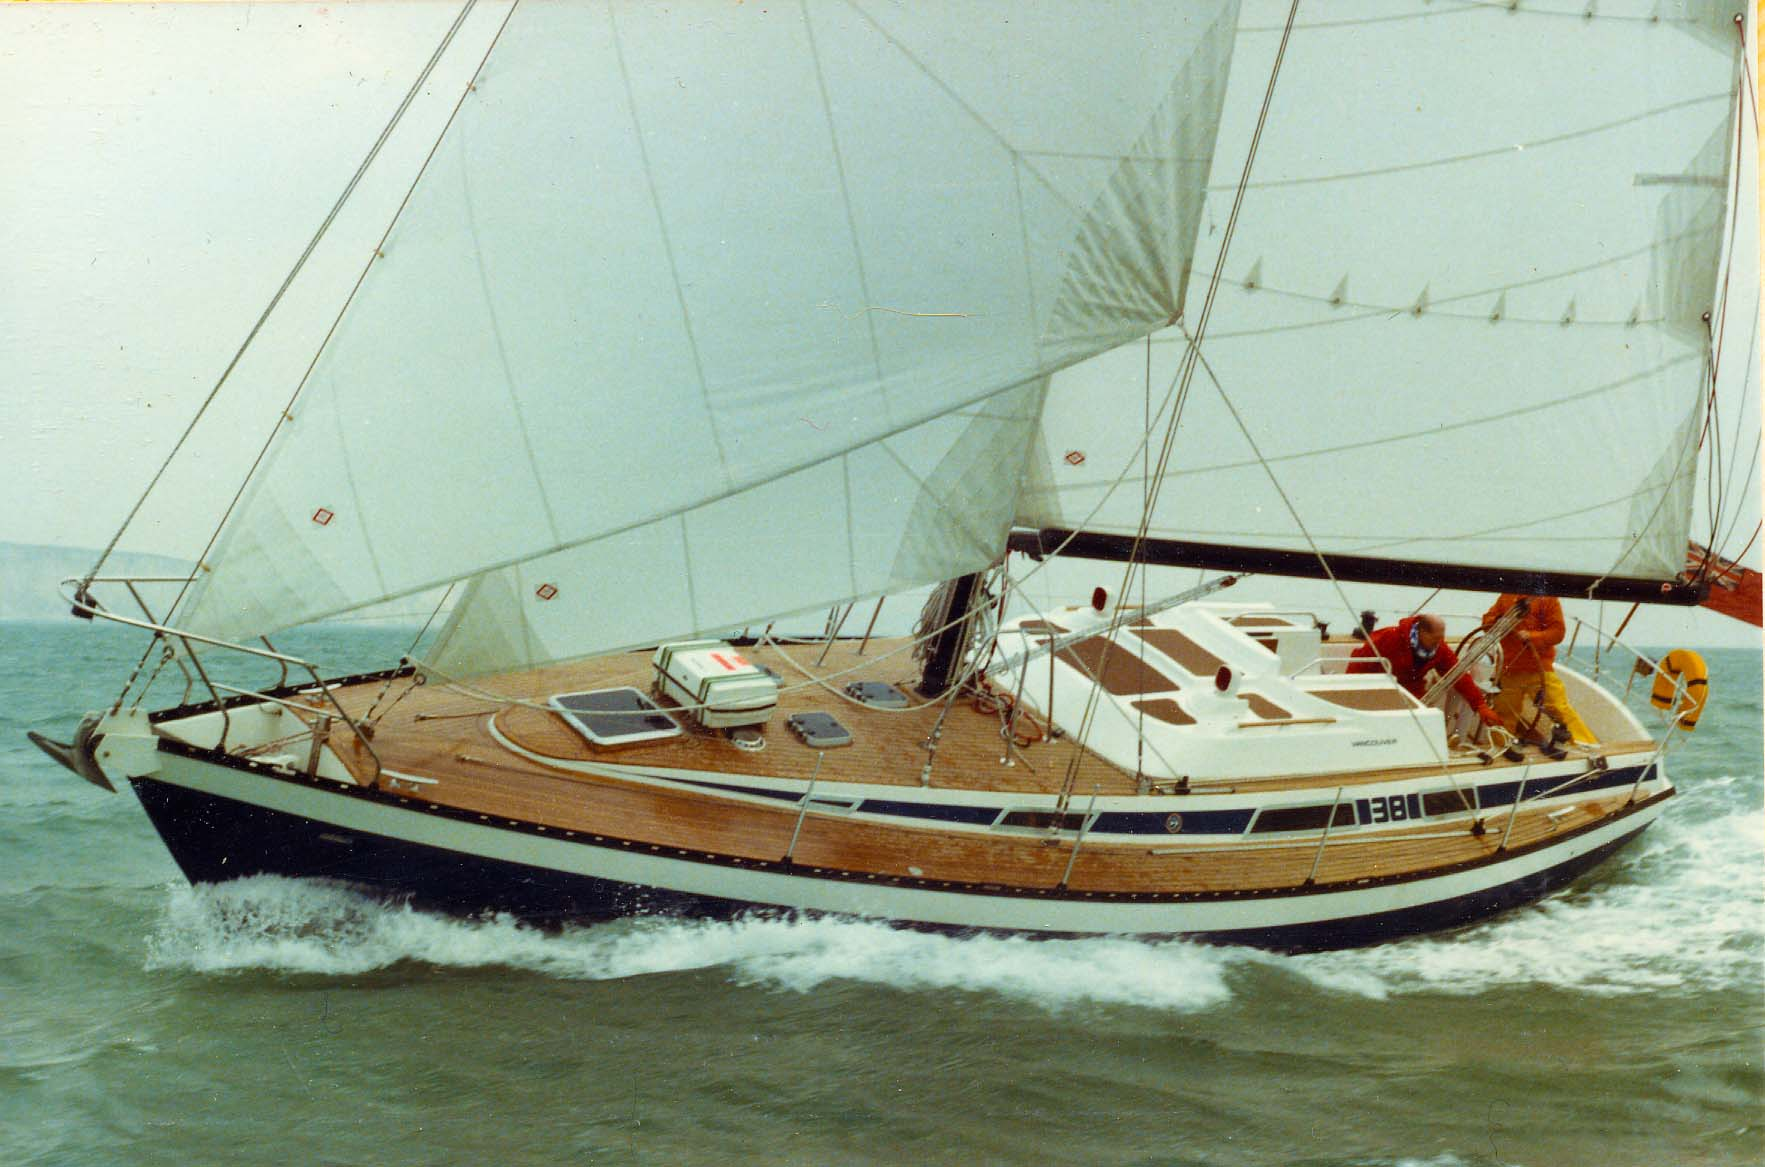 V38 with Yachting World team